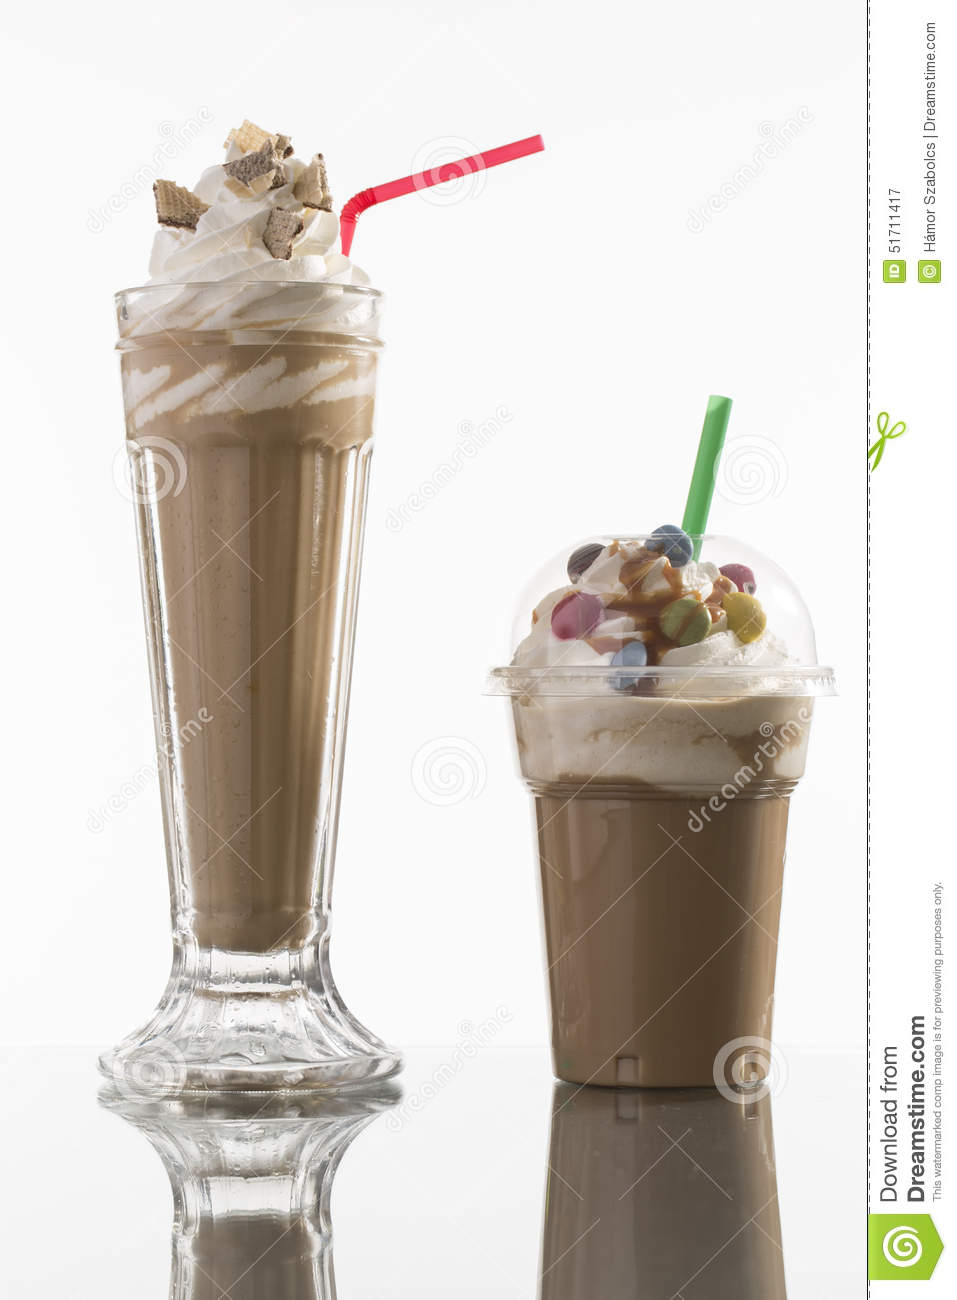 Ice caffe in glass and plastic takeaway cup, decorated